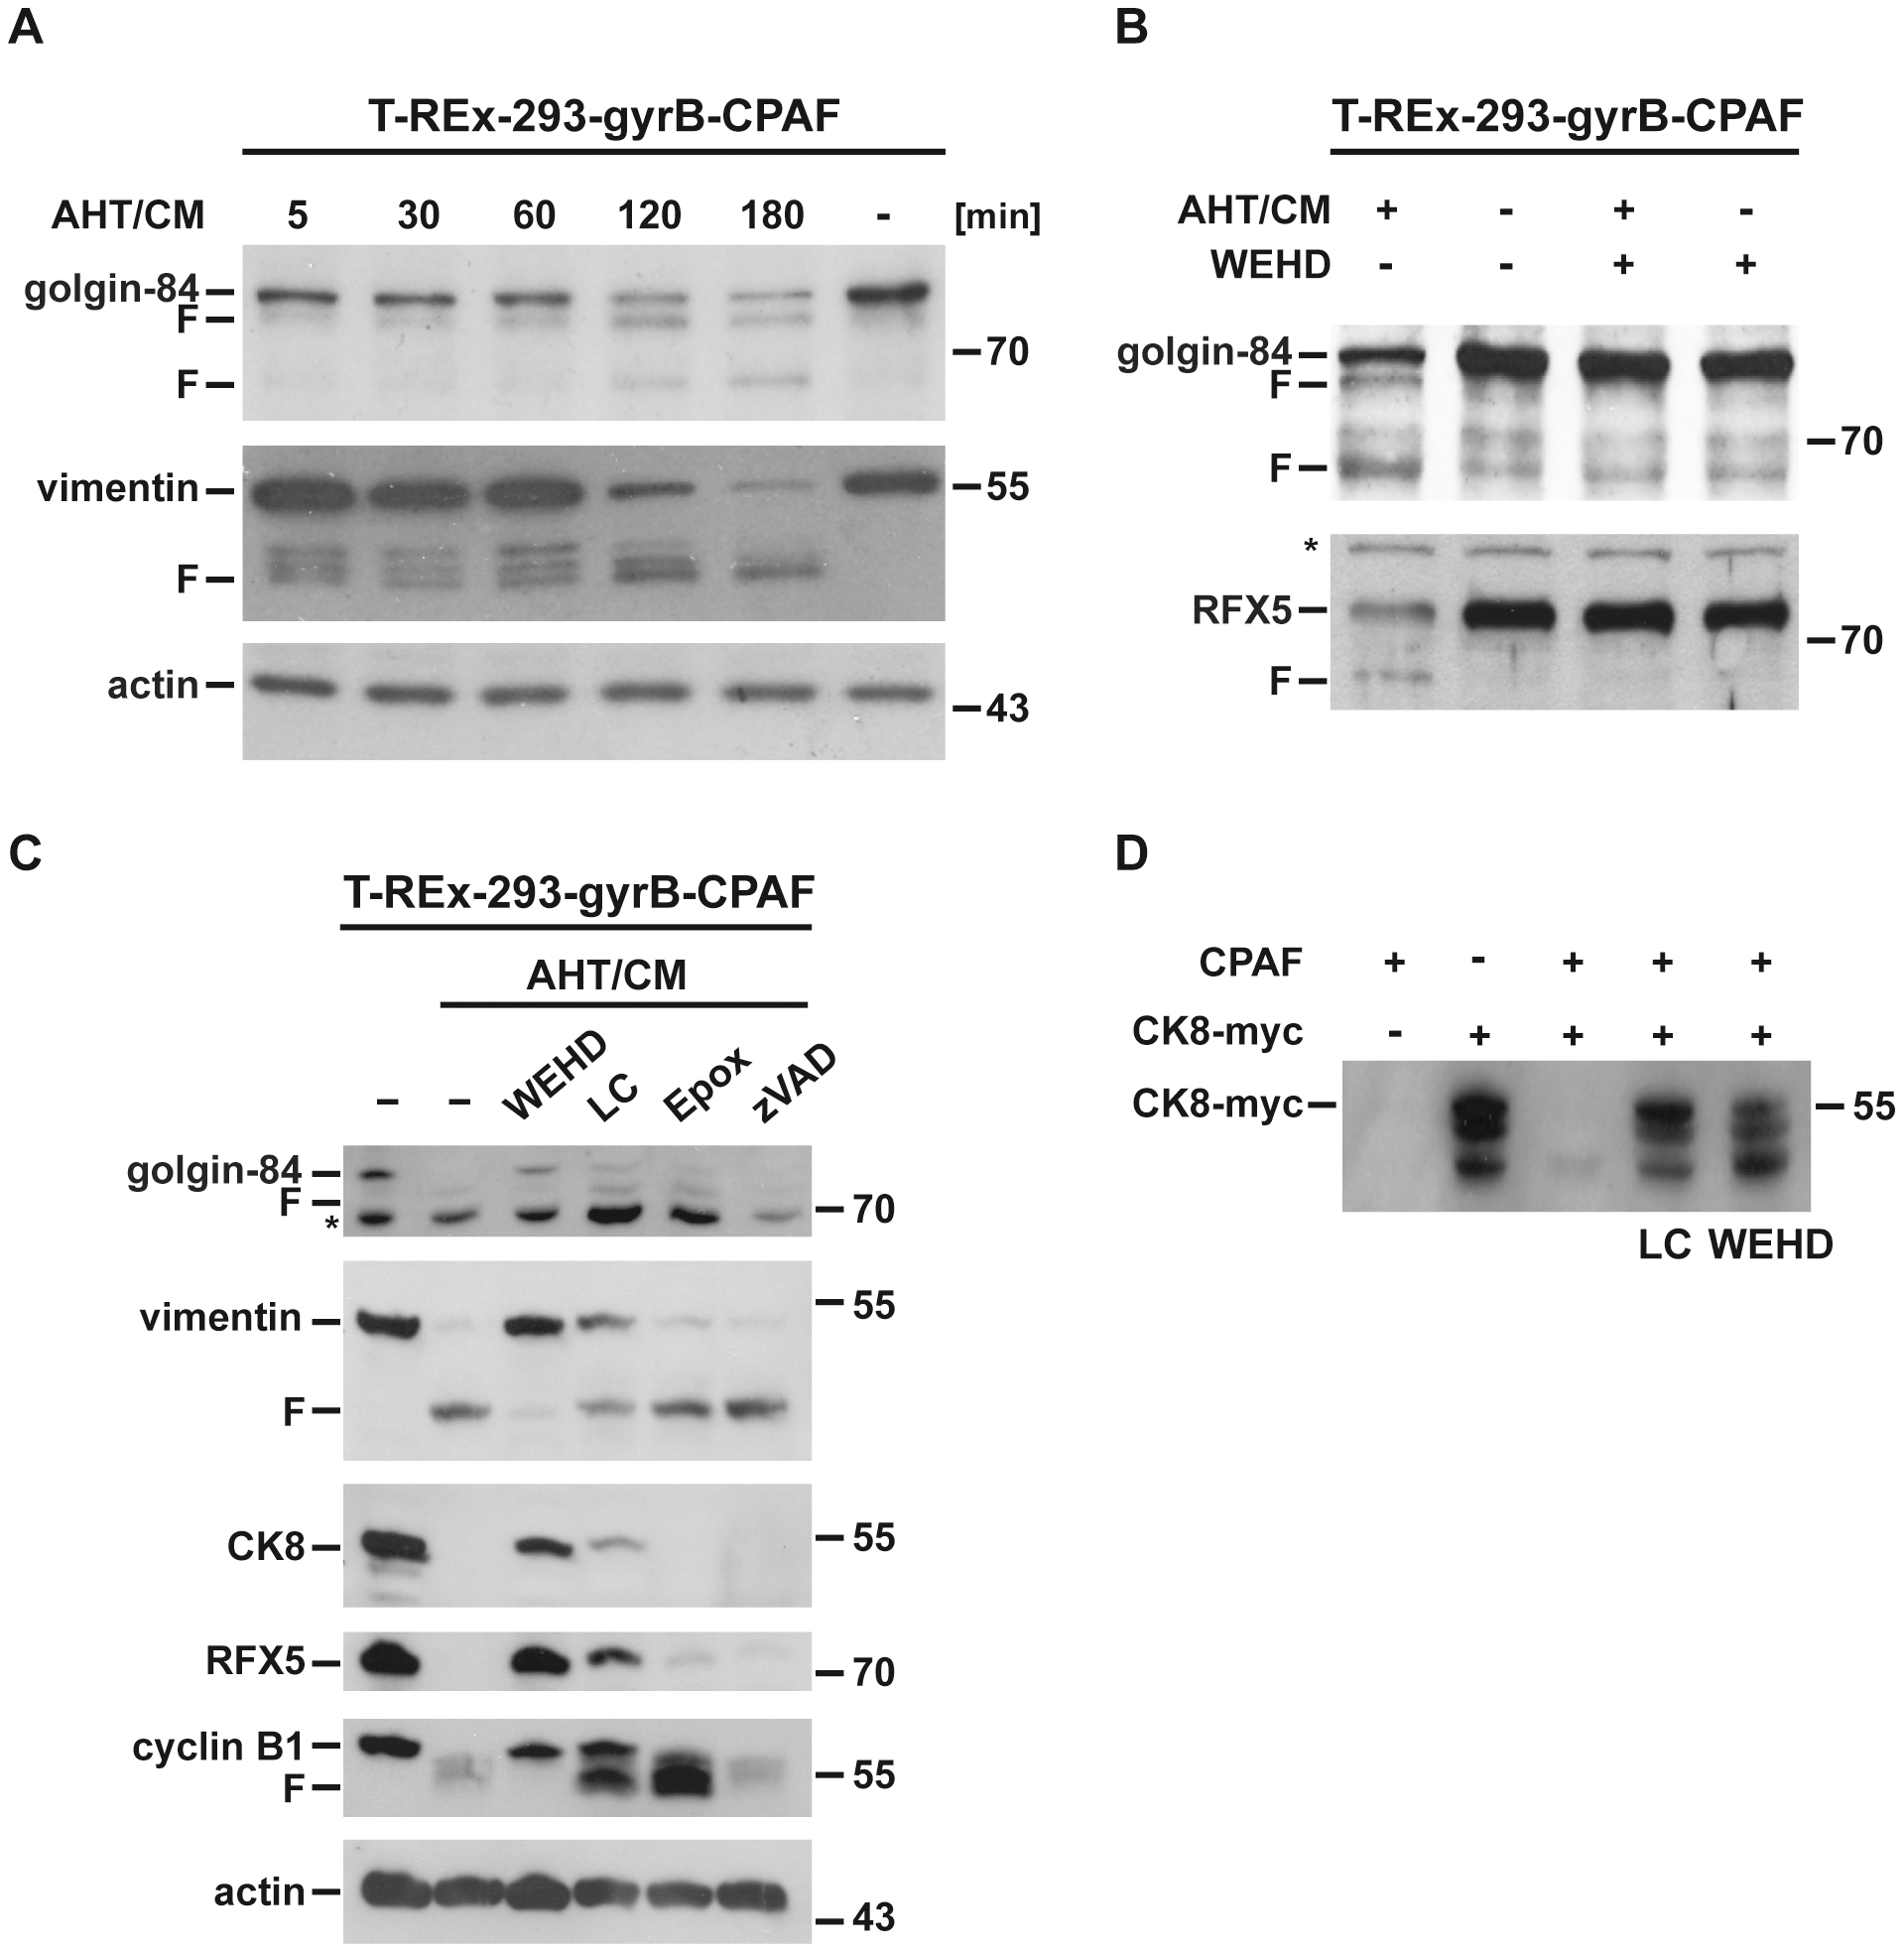 WEHD-fmk is an inhibitor of CPAF-dependent proteolysis.